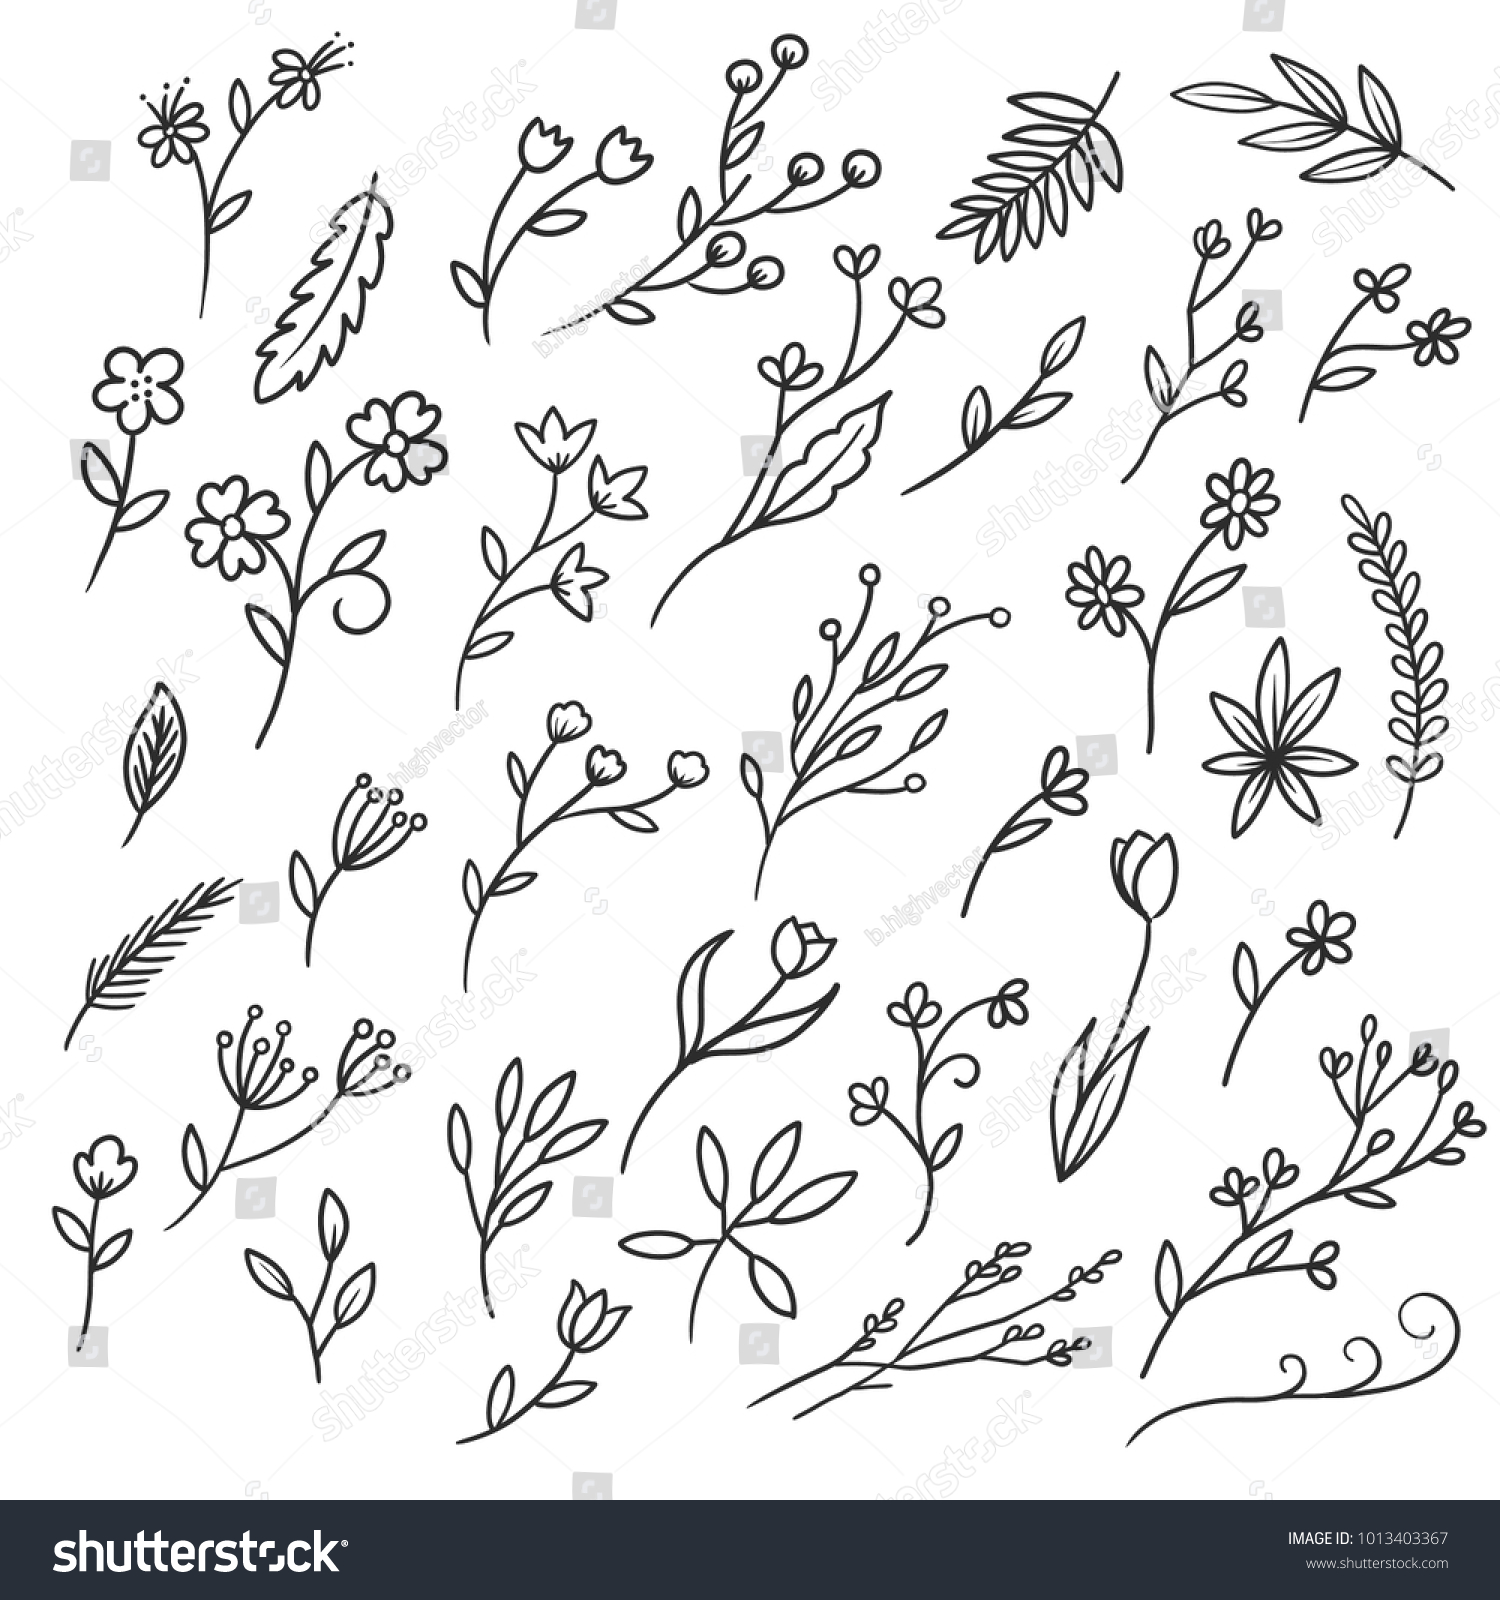 Wild Flowers Set Vintage Flowers Black And White Illustration In